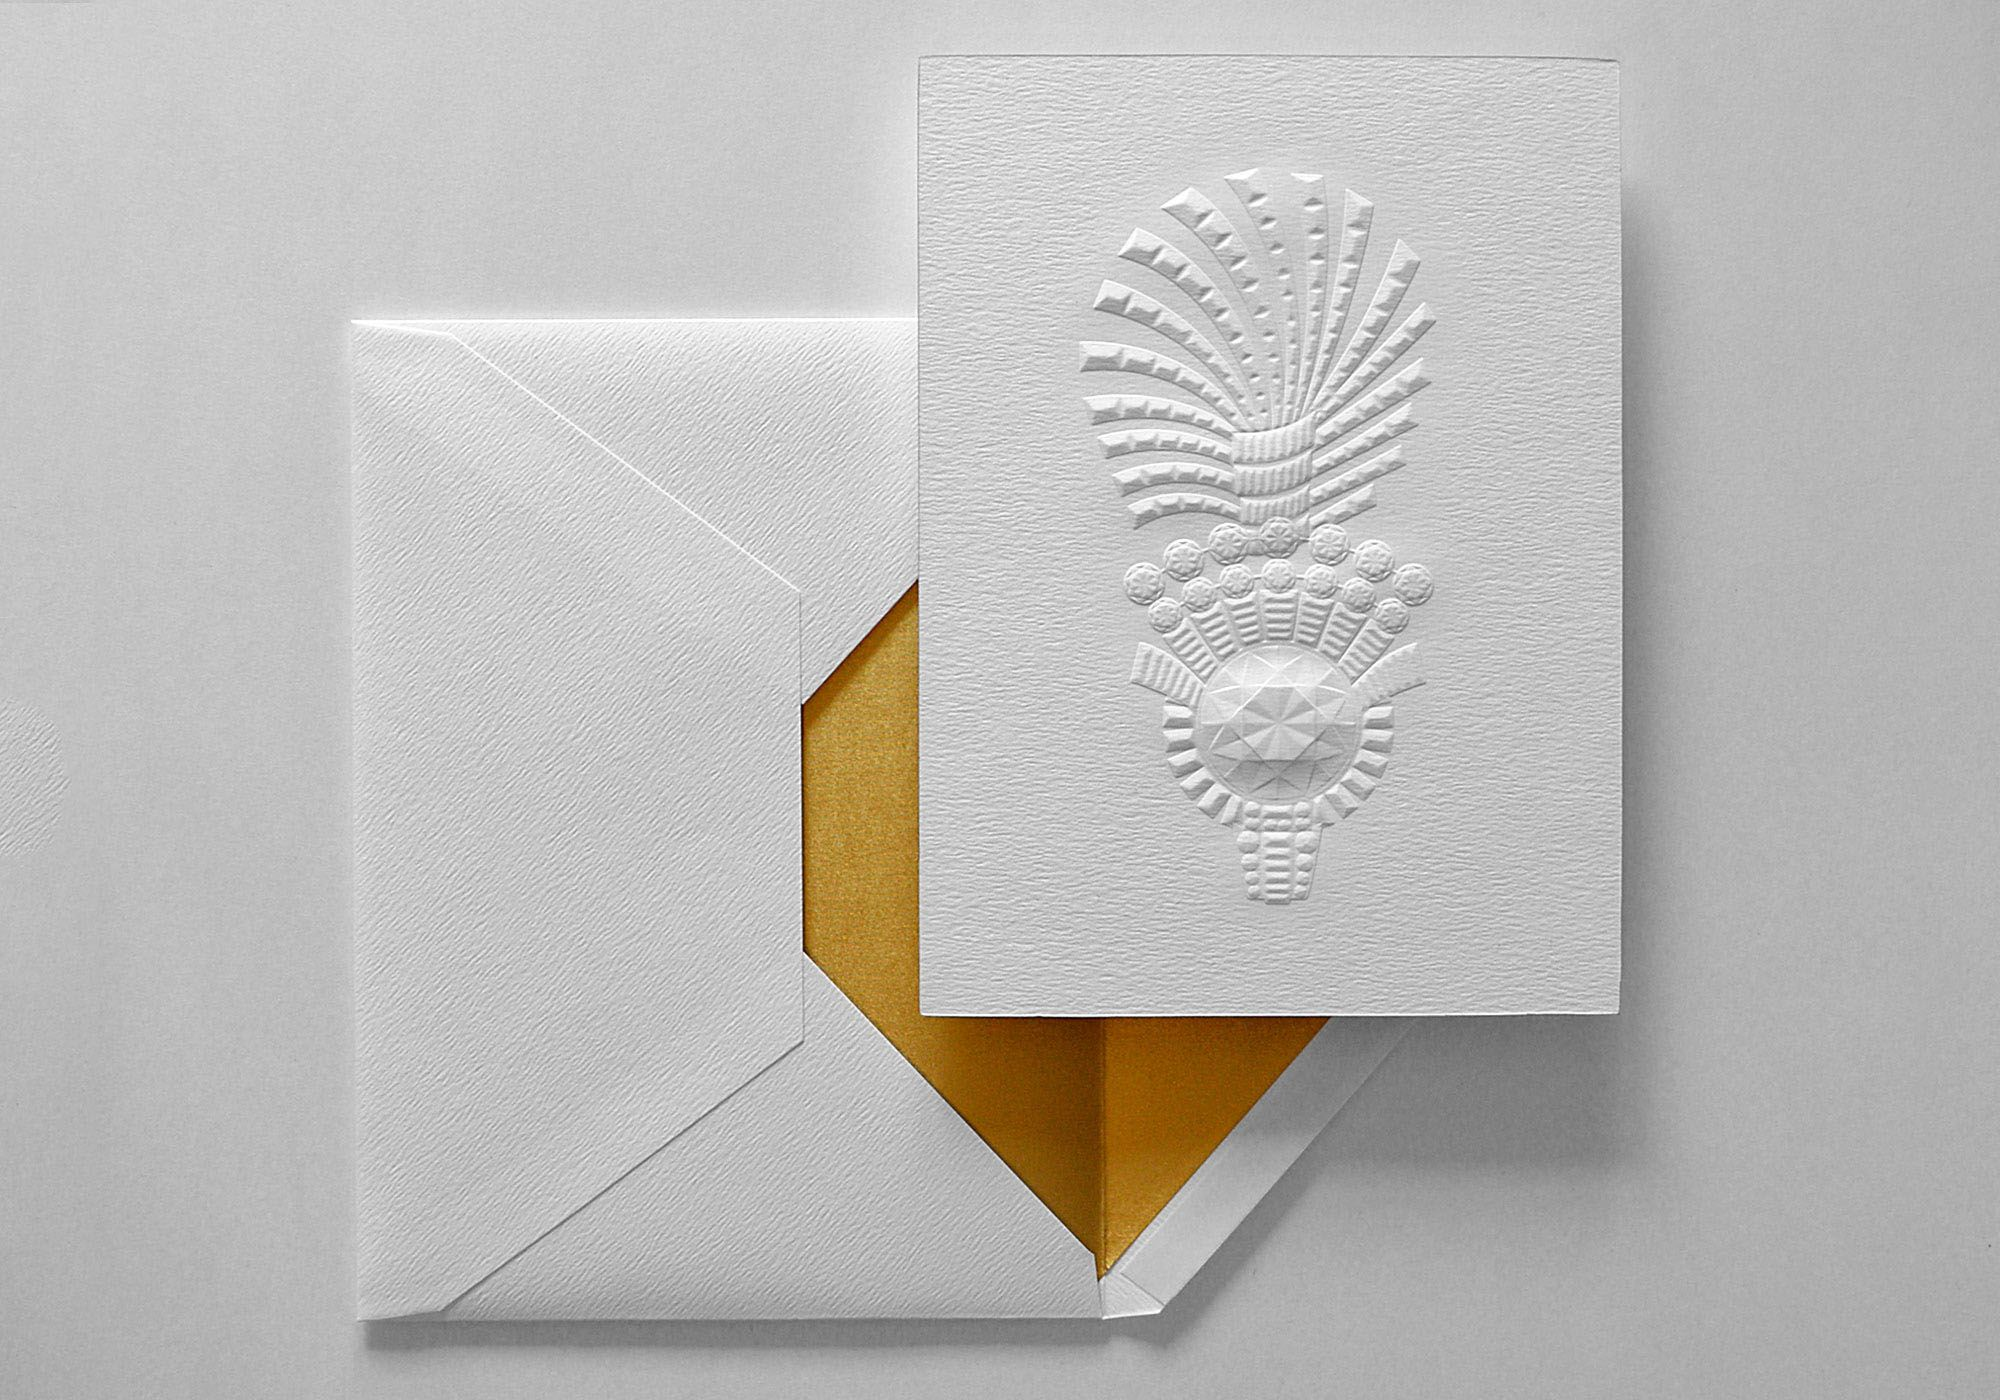 Check out this behance project invitation exhibition